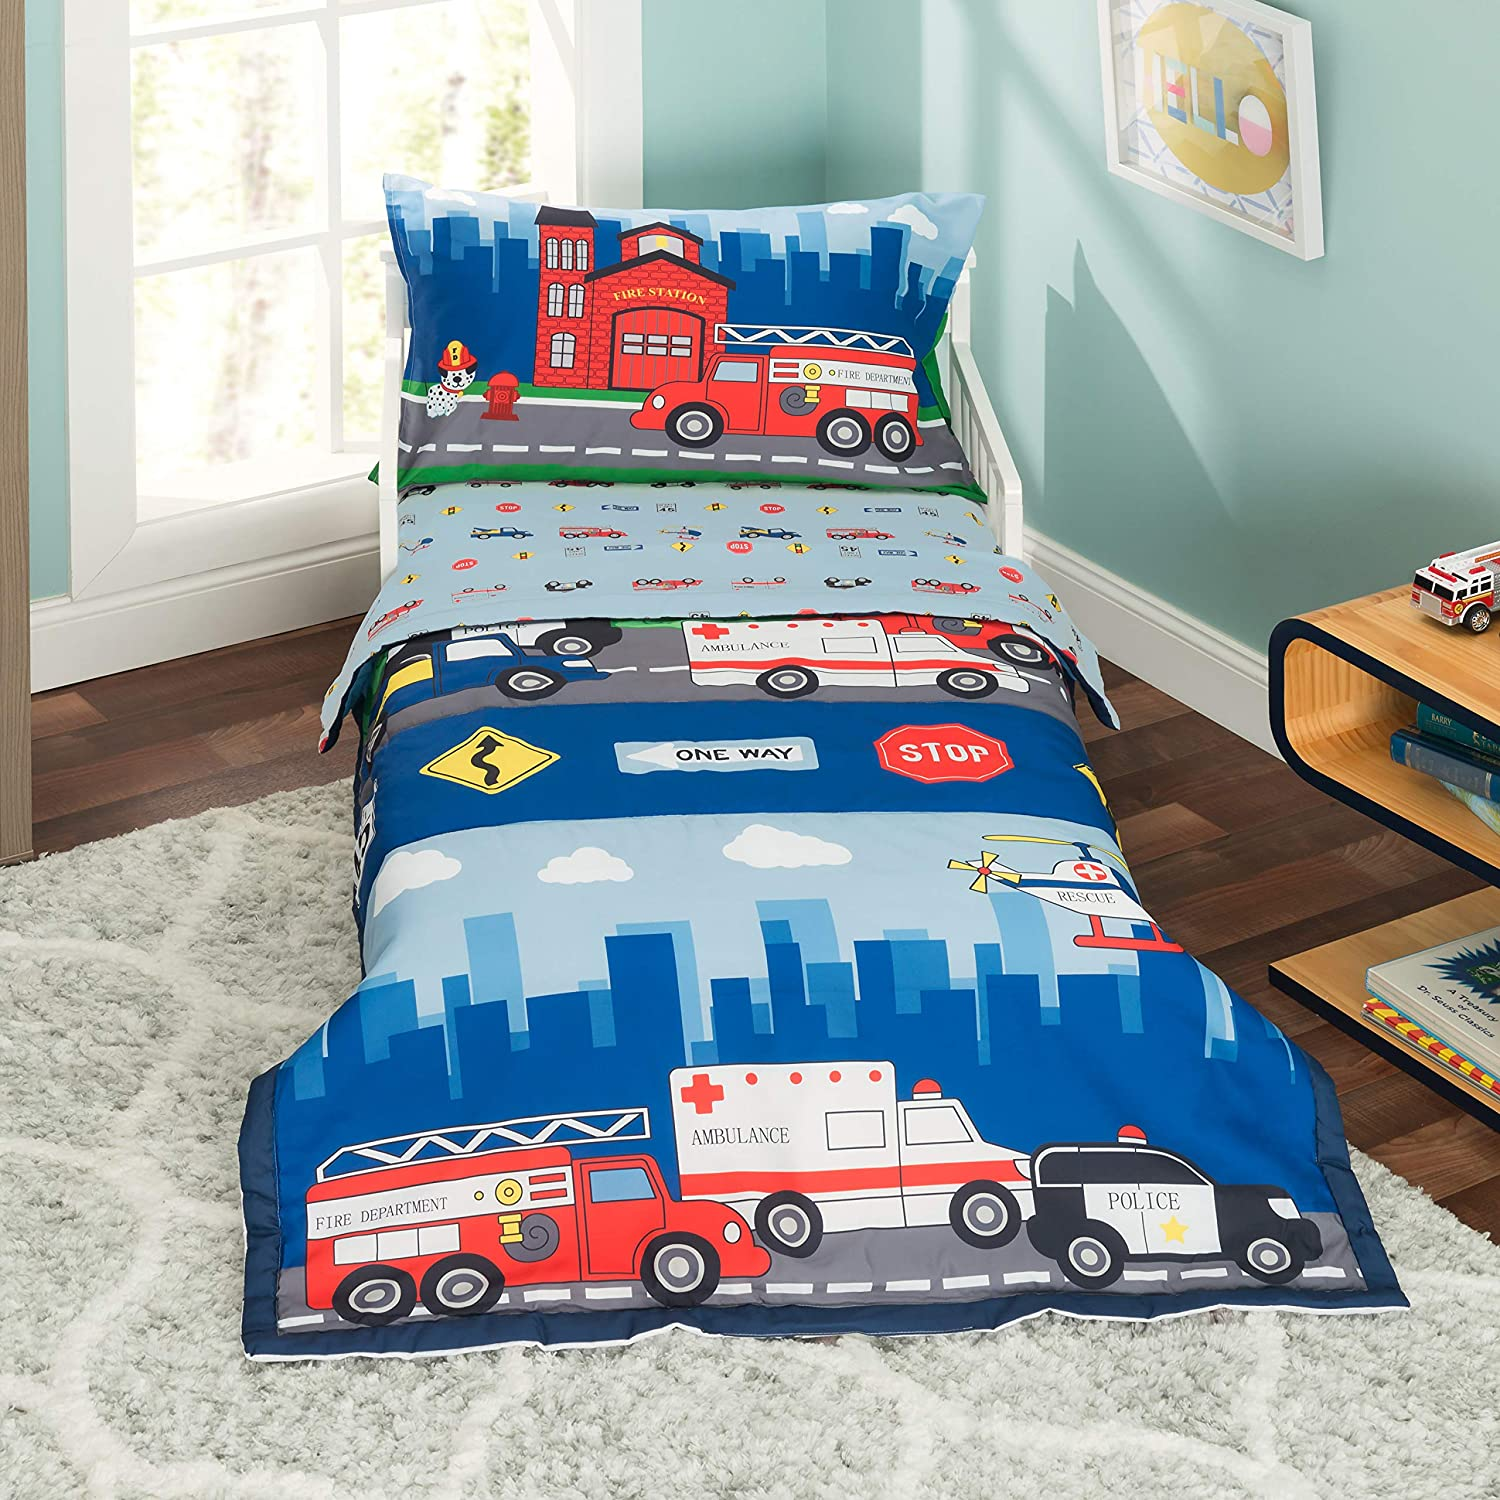 Fitted Sheet and Reversible Pillowcase EVERYDAY KIDS 4 Piece Toddler Bedding Set Includes Comforter Fire and Police Rescue Flat Sheet